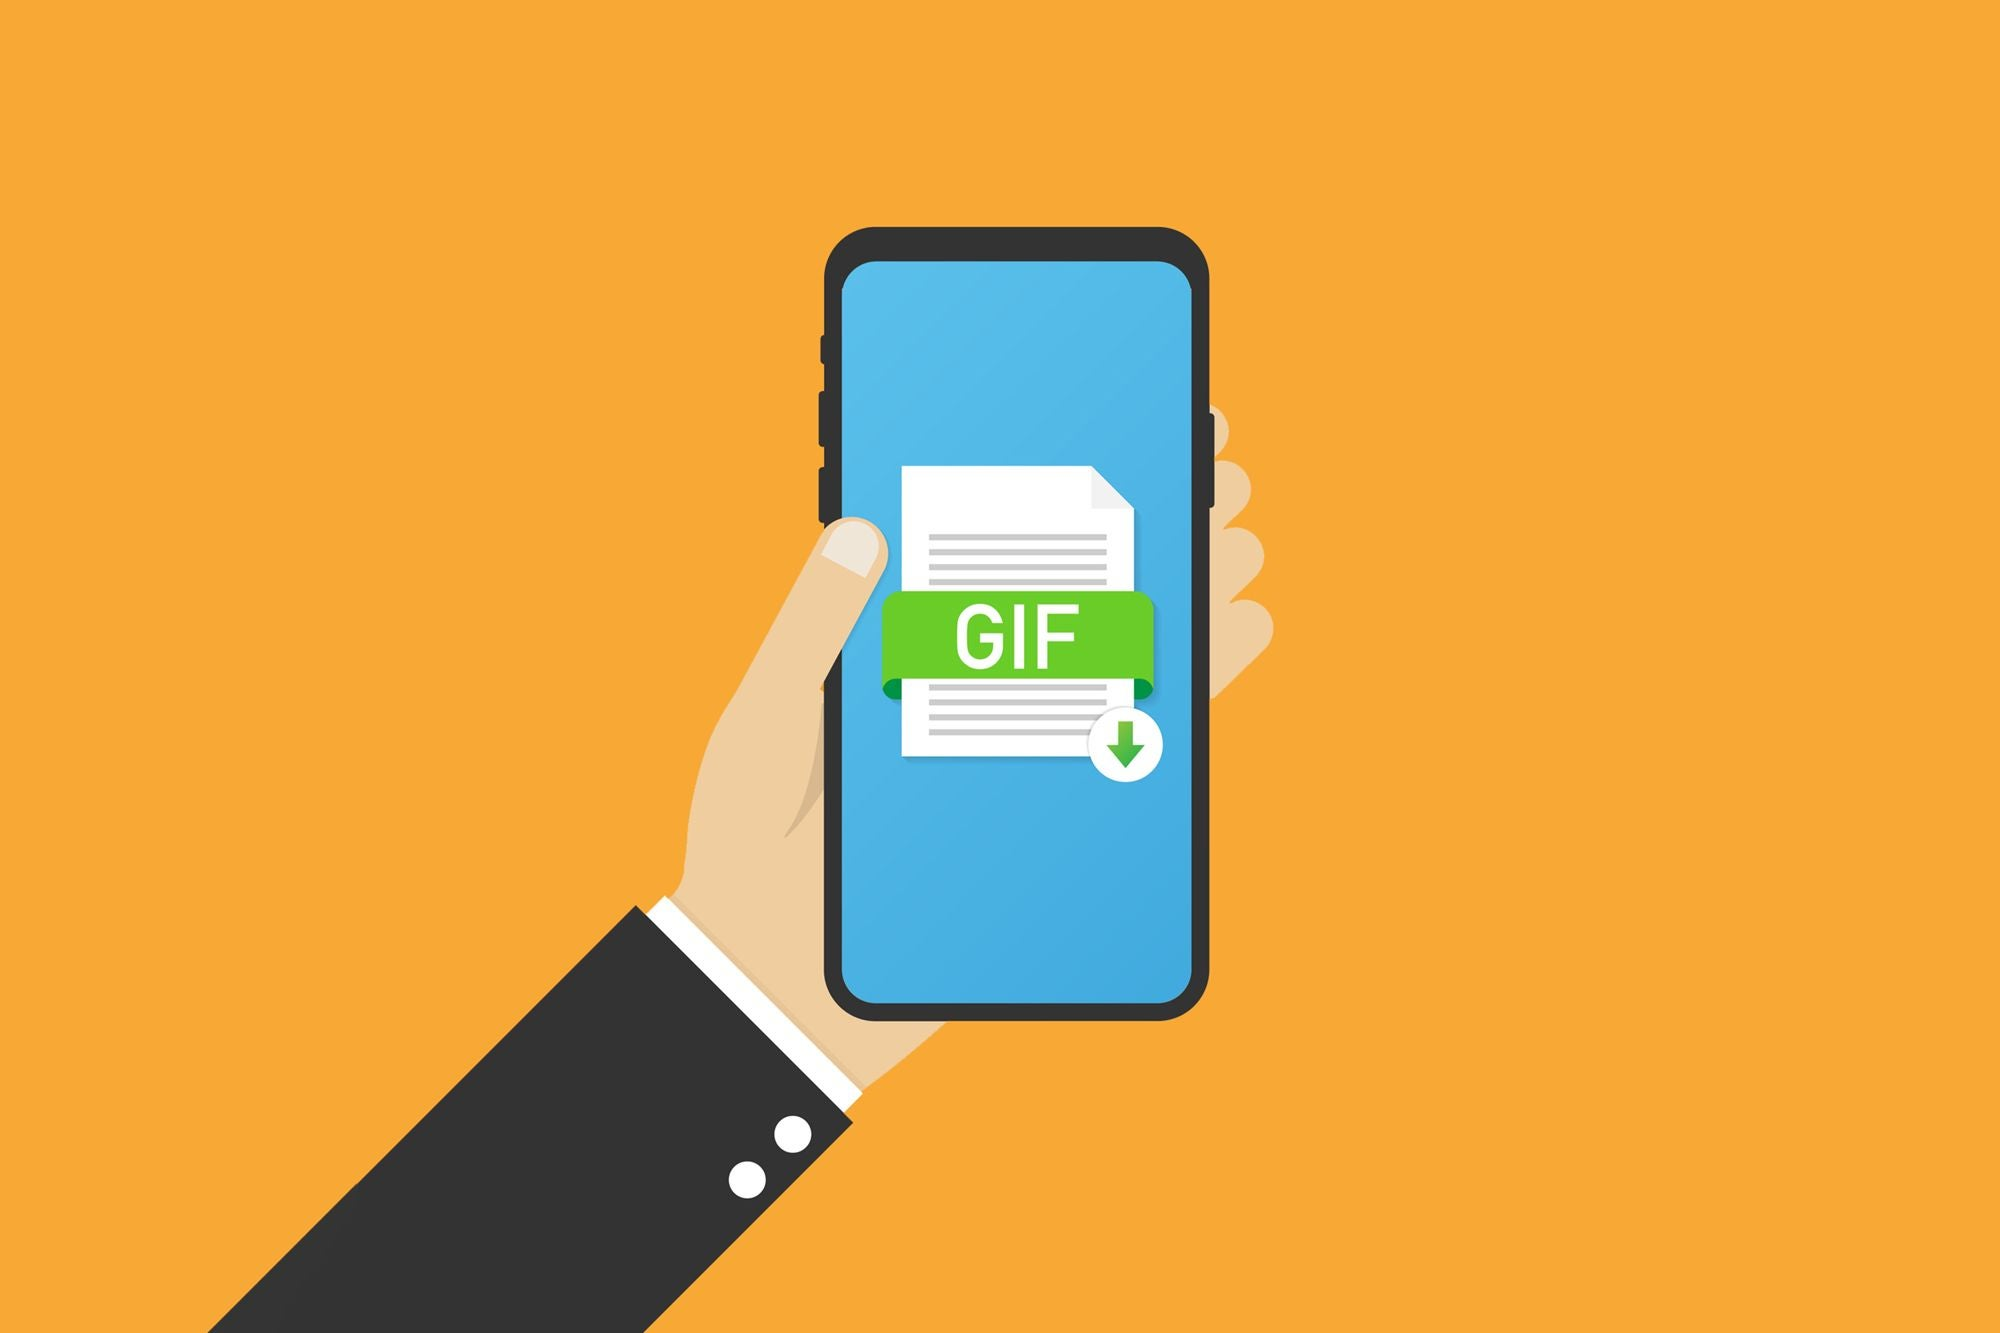 Best GIF Creator and Editor Apps